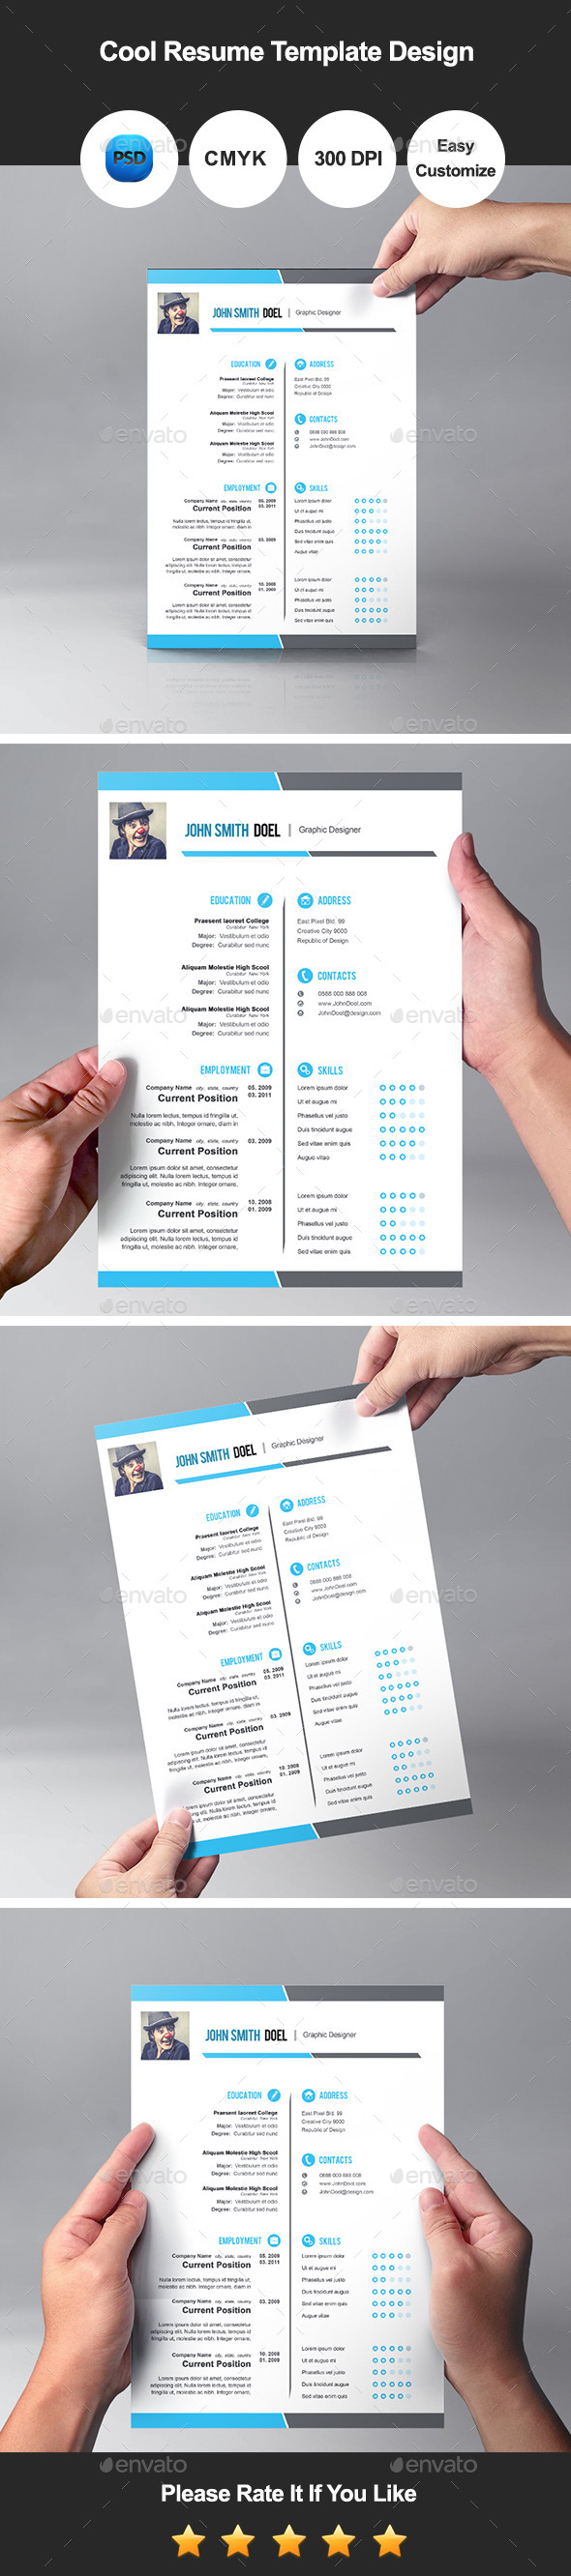 Premium Cool Resume Template Design By Graphicsdesignator  Graphicriver